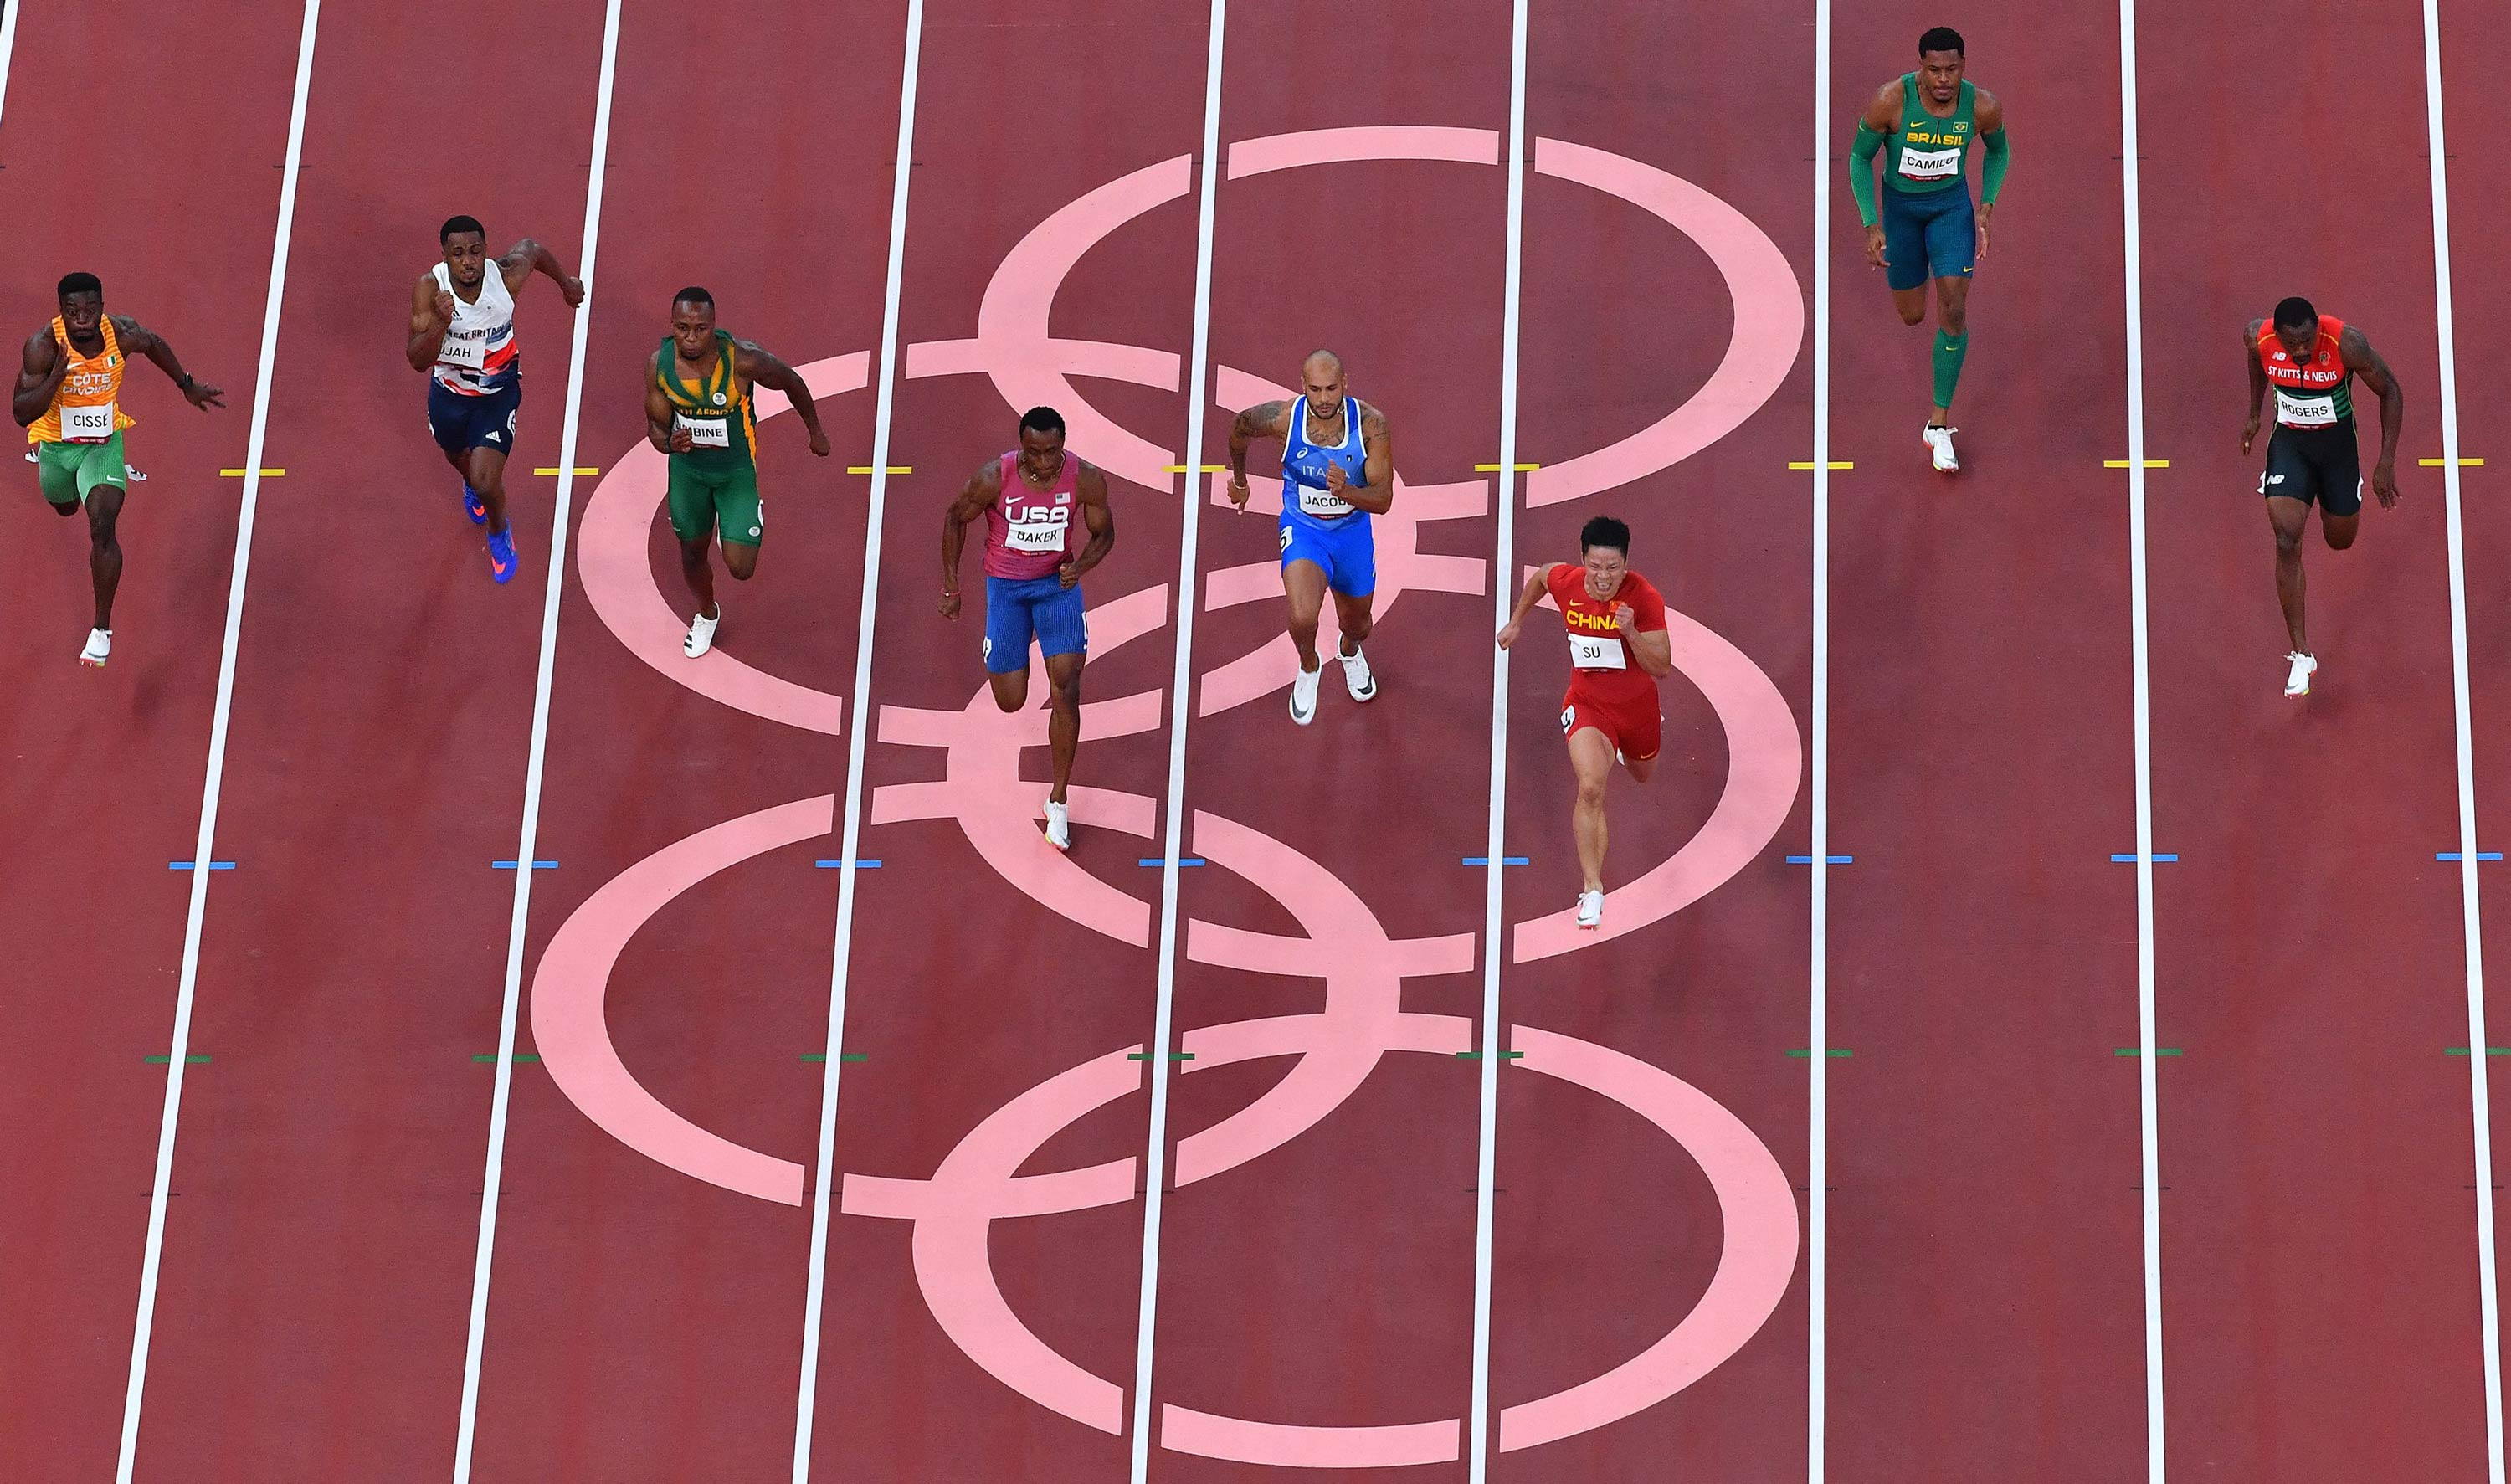 Runners compete in the 100m semifinals on August 1.